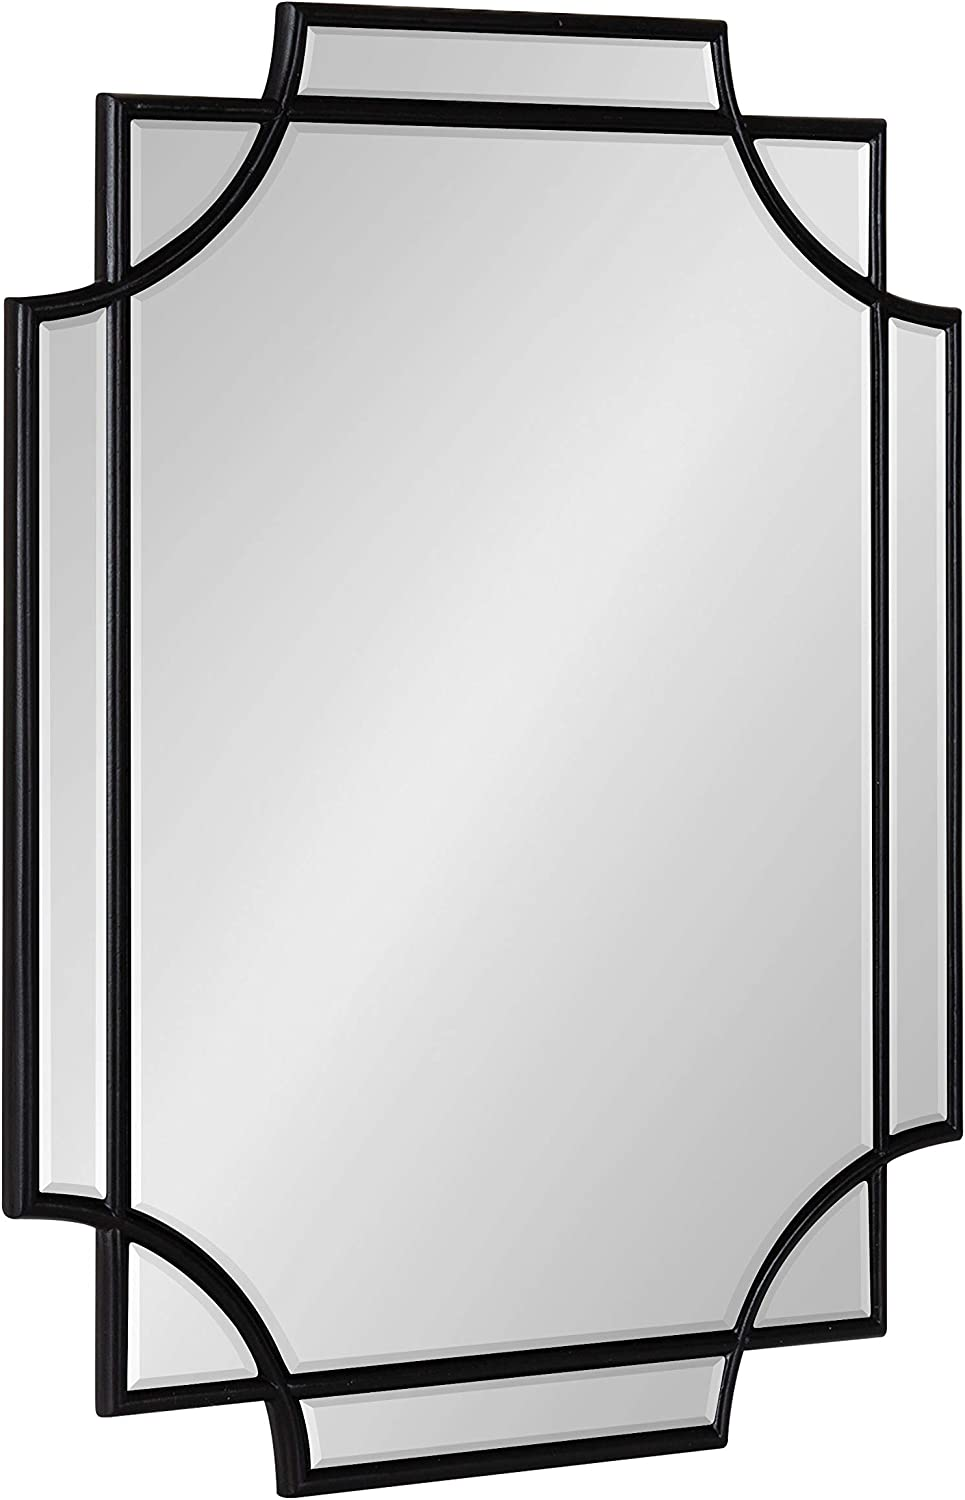 Kate and Laurel Minuette Glam Wall Mirror, 18 x 24, Black, Boho-Chic Home Decor for Wall